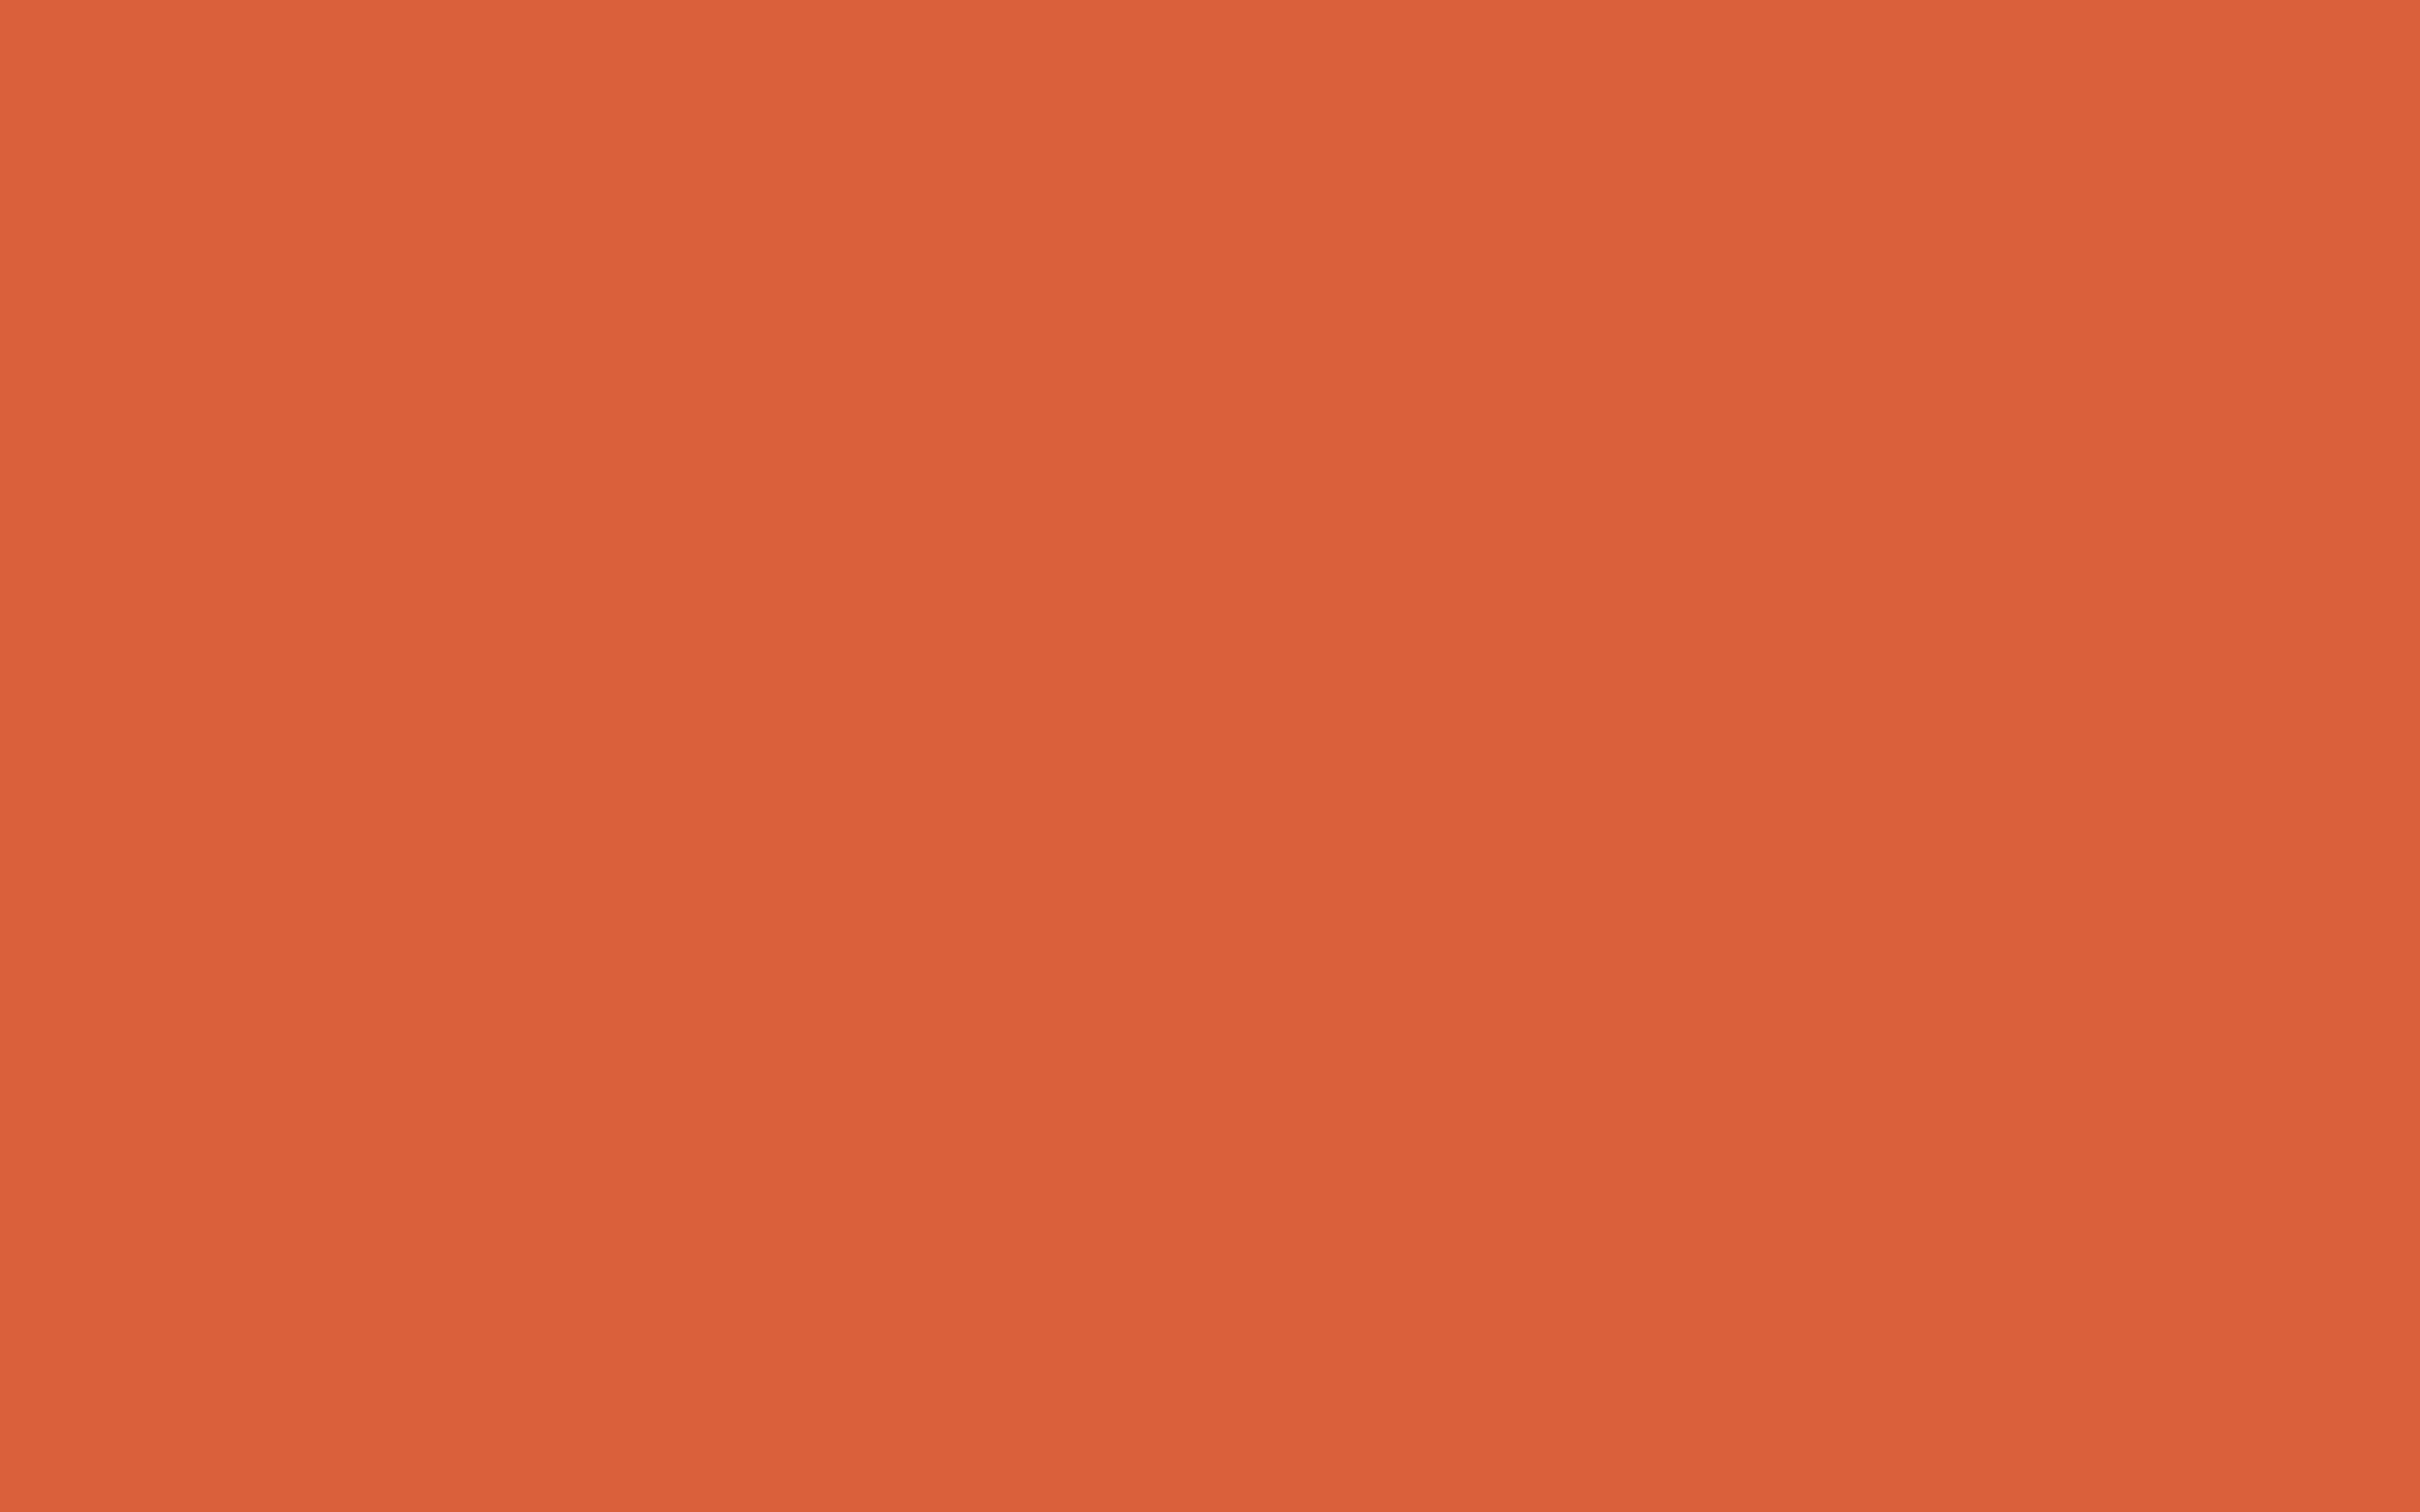 2560x1600 Medium Vermilion Solid Color Background